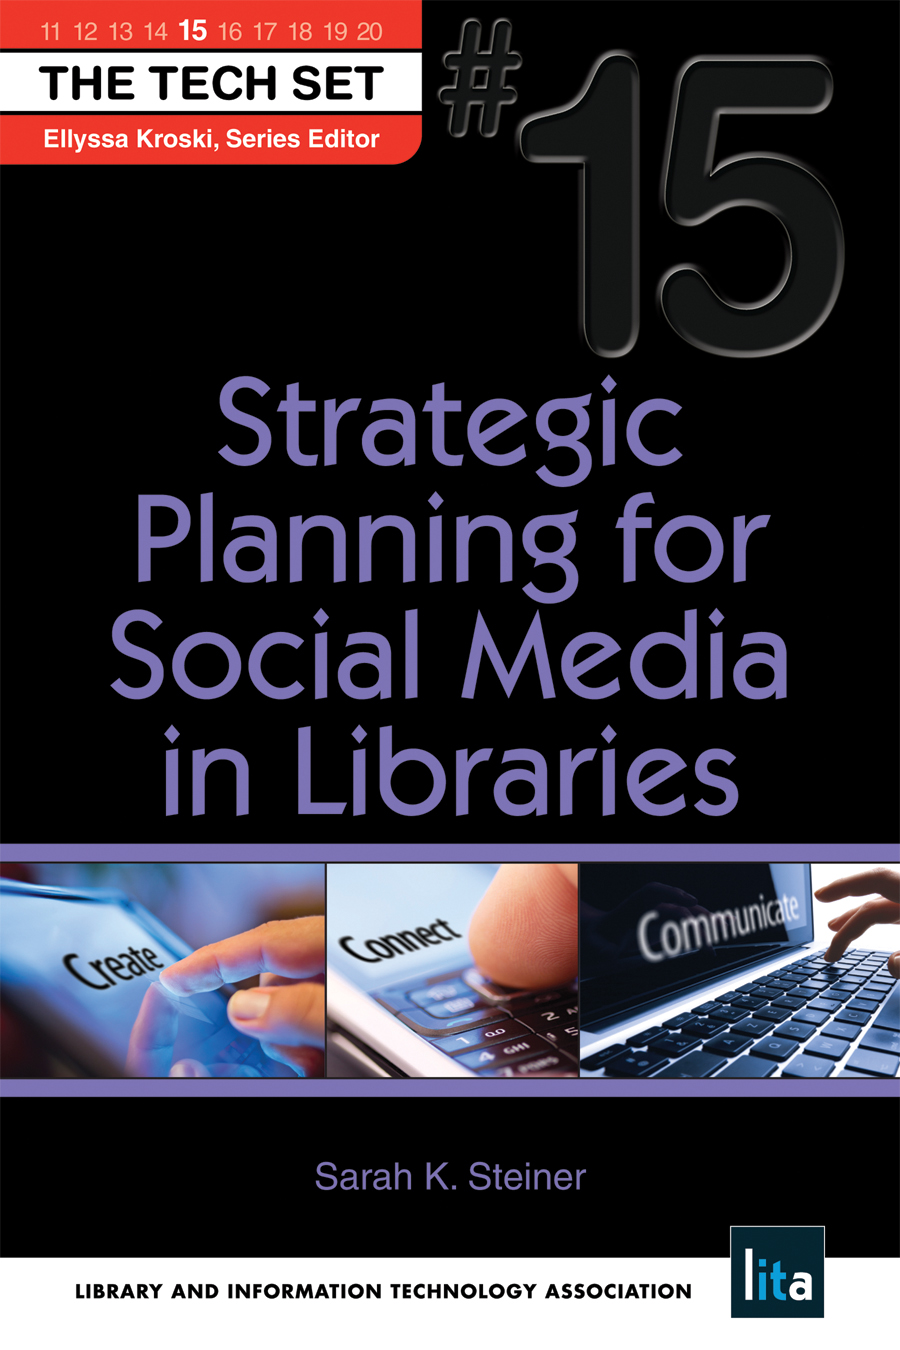 Strategic Planning for Social Media in Libraries (THE TECH SET� #15)